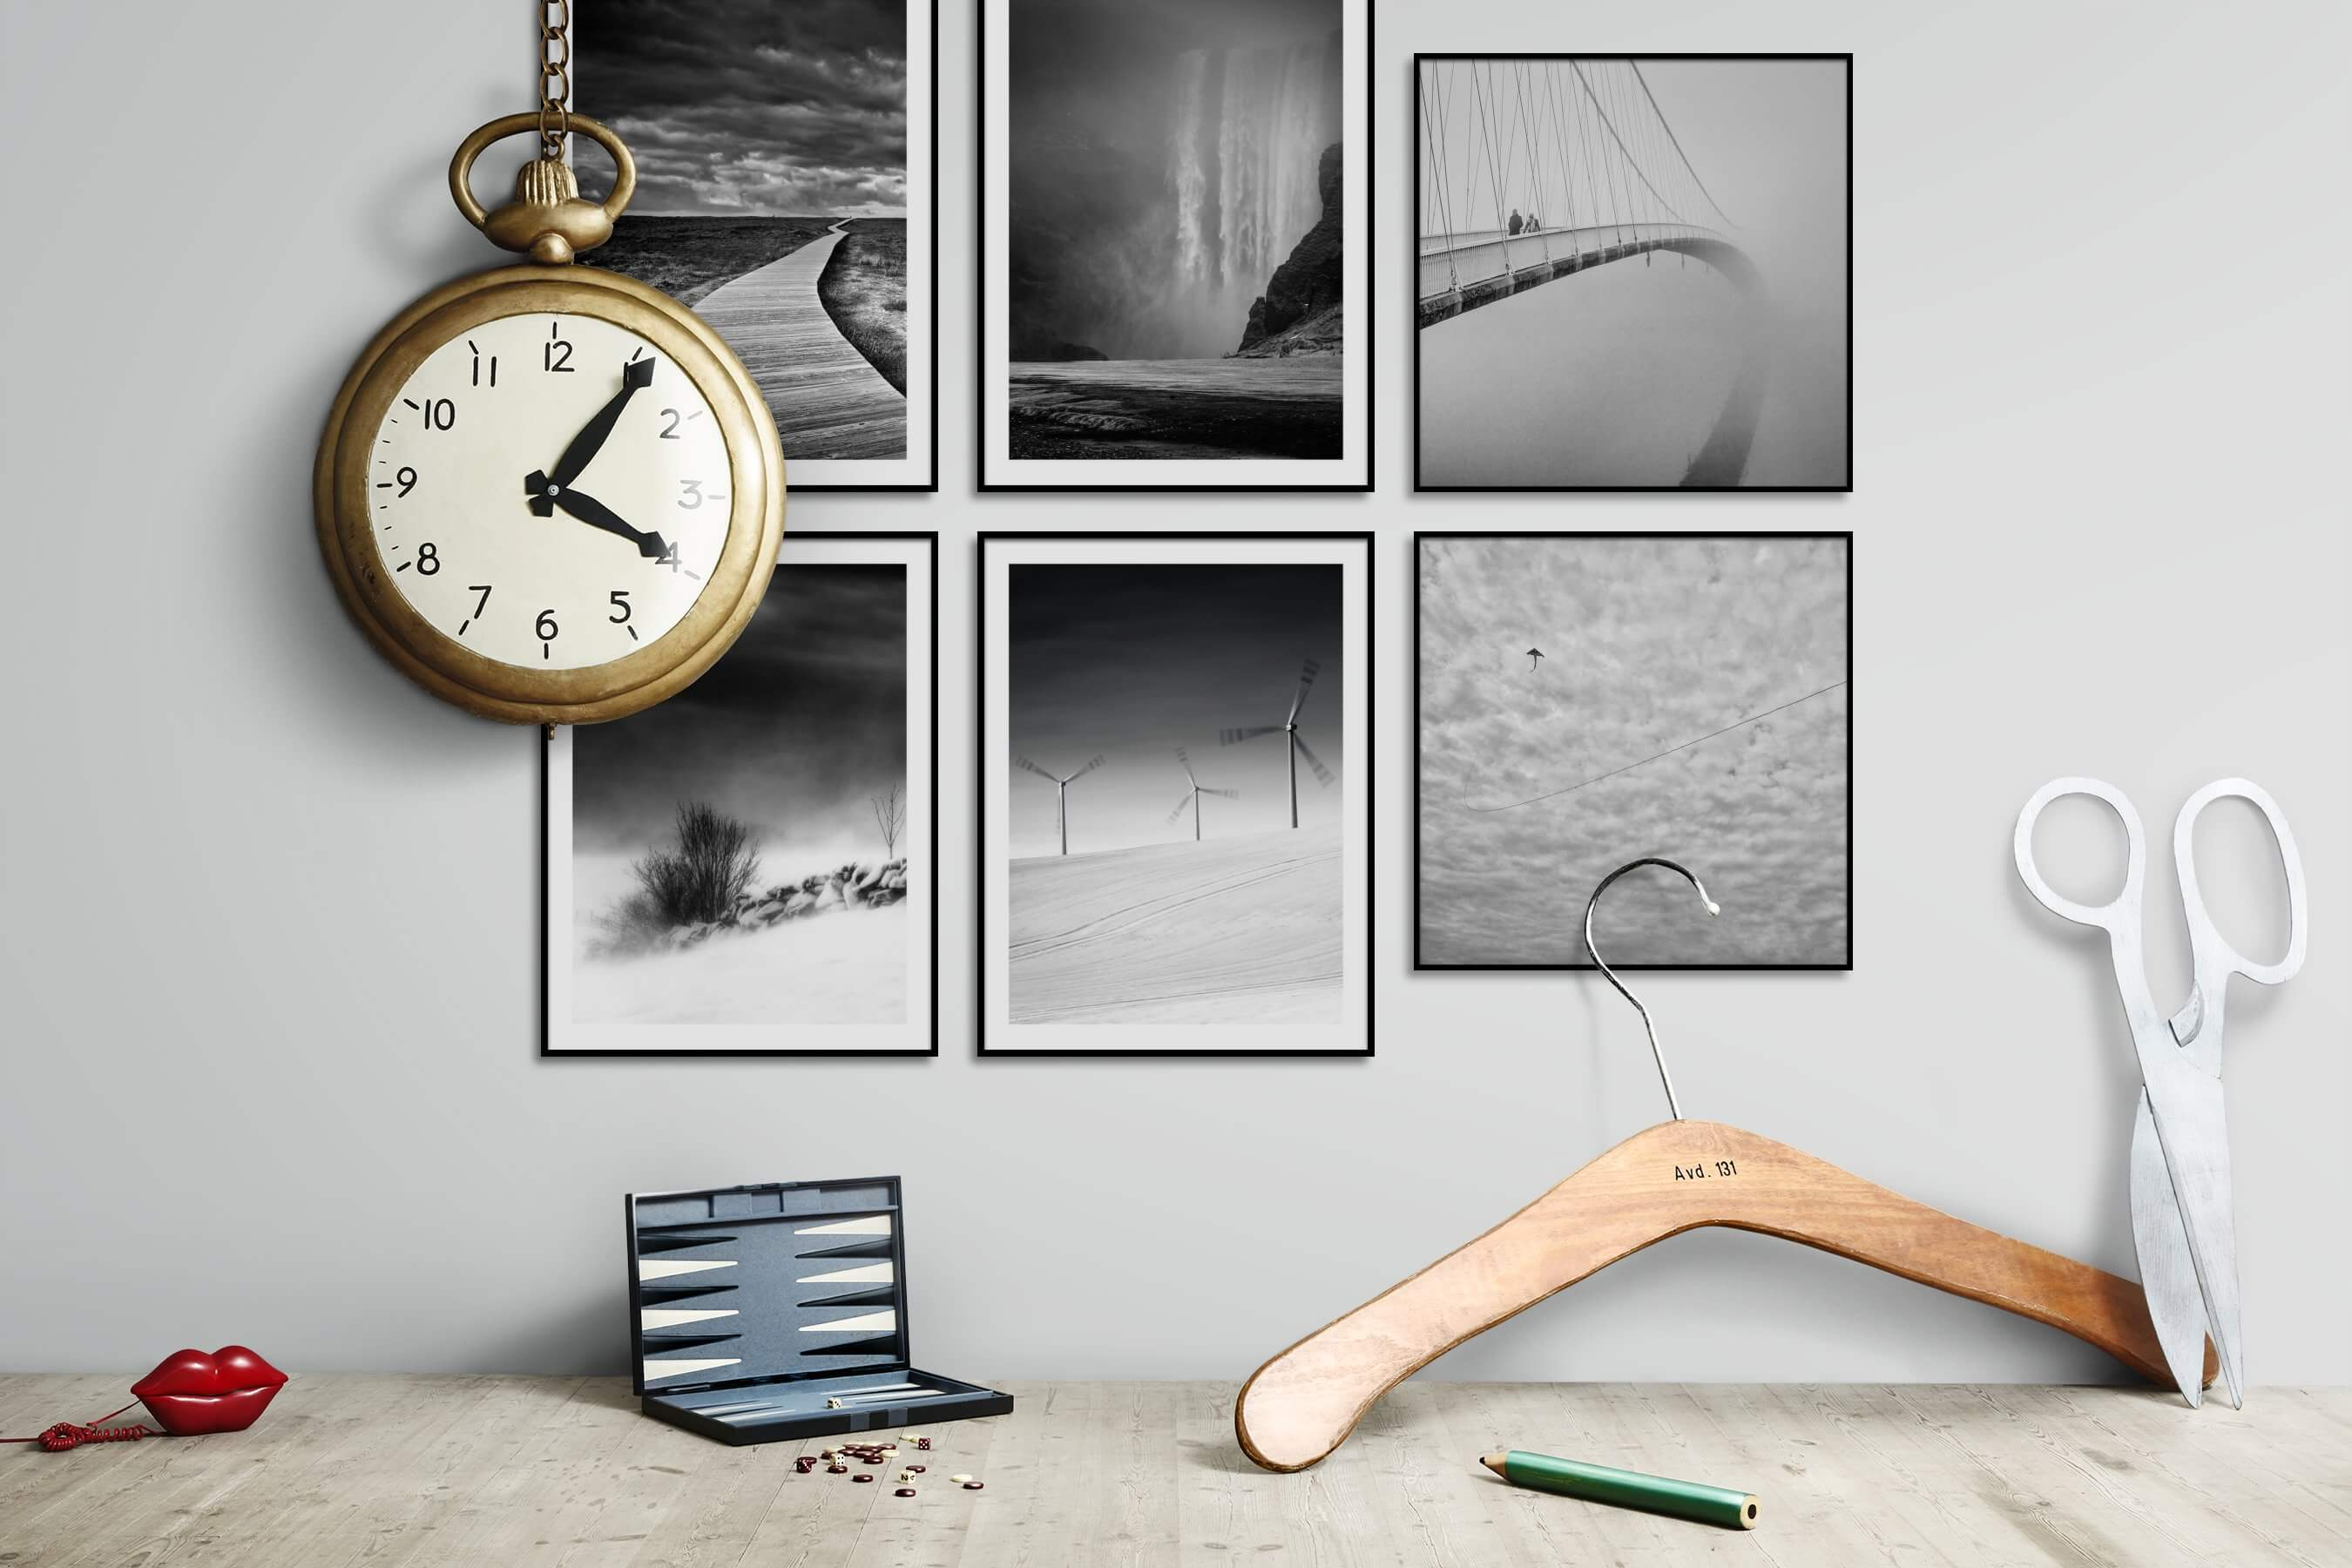 Gallery wall idea with six framed pictures arranged on a wall depicting Black & White, Nature, Mindfulness, Country Life, For the Minimalist, and City Life